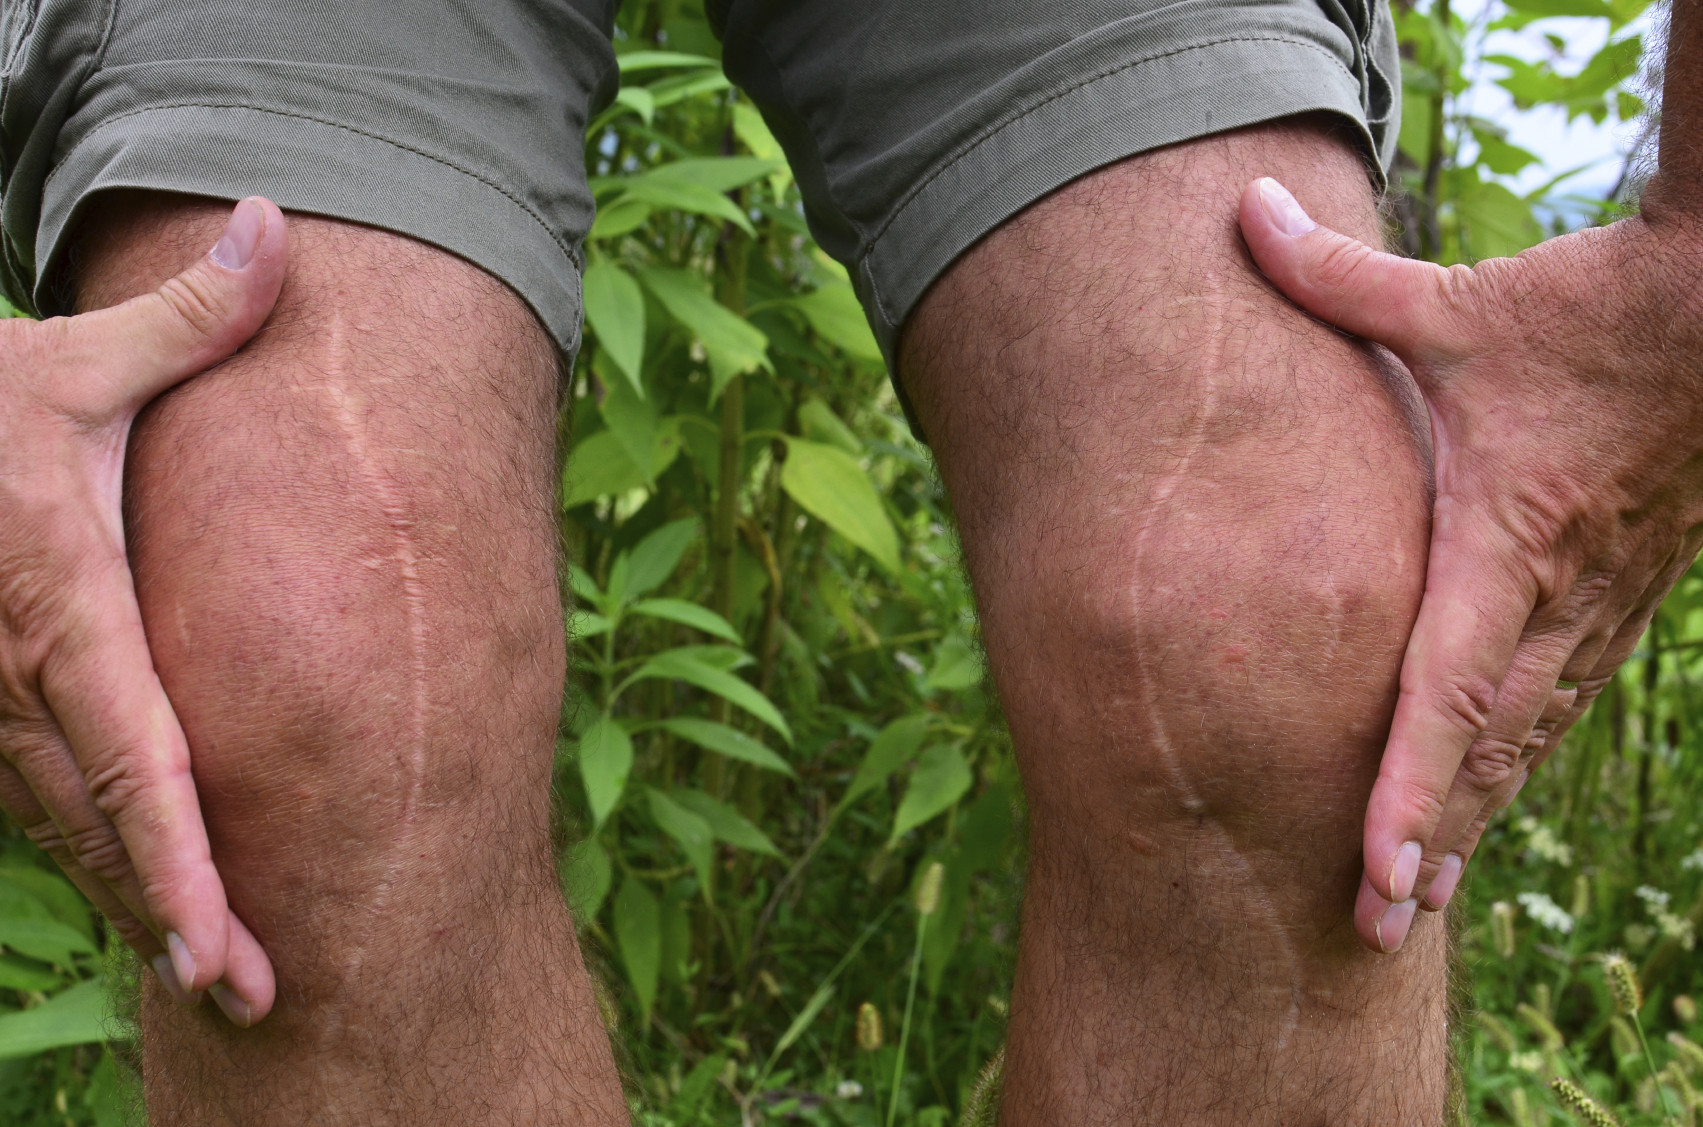 knee-replacement-scar-joint-painiStock_000050830058_Medium